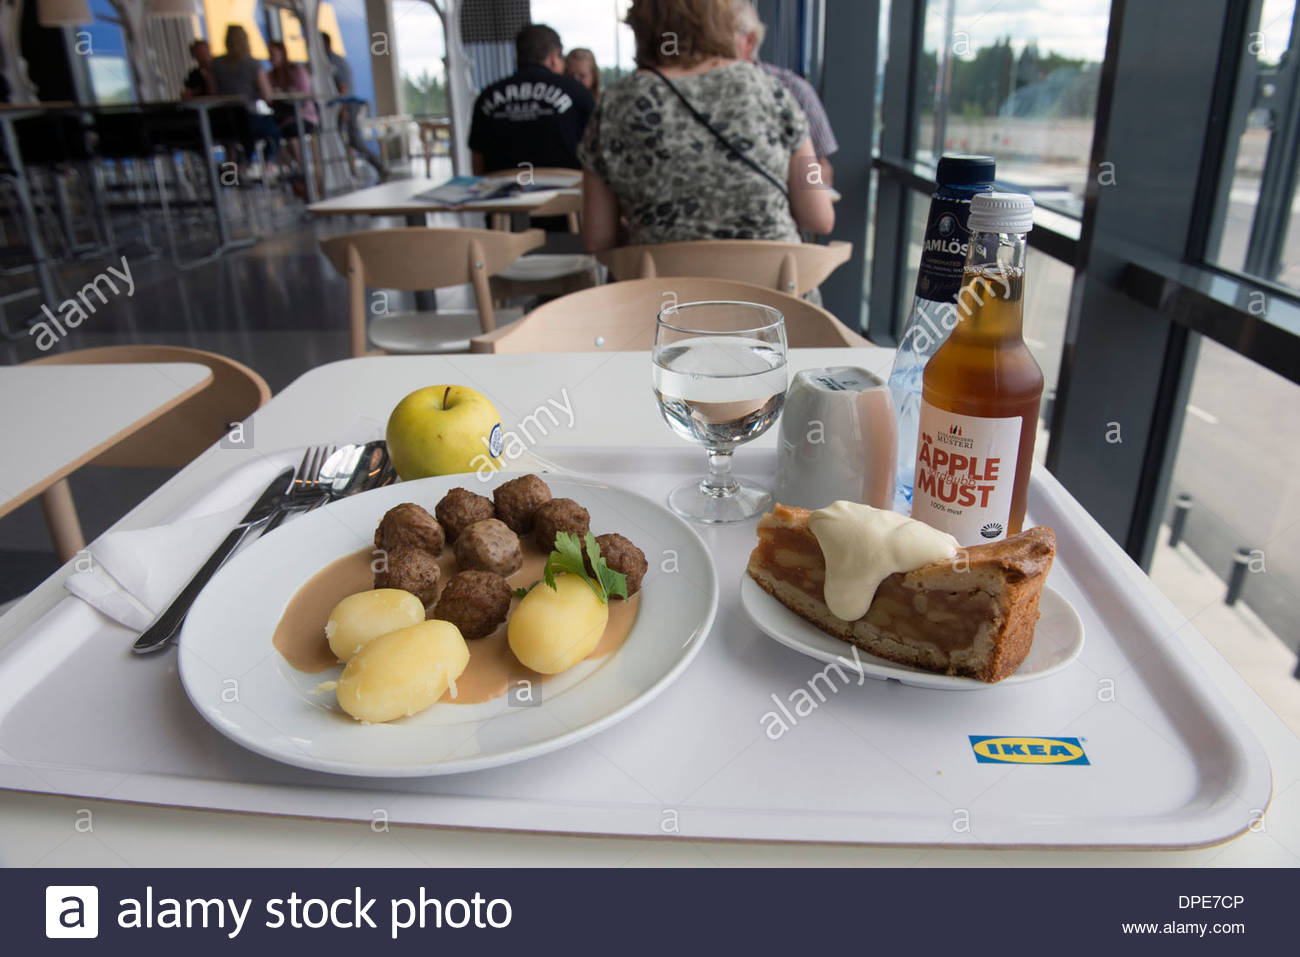 Ikea Sweden Stock Photos Ikea Sweden Stock Images Alamy